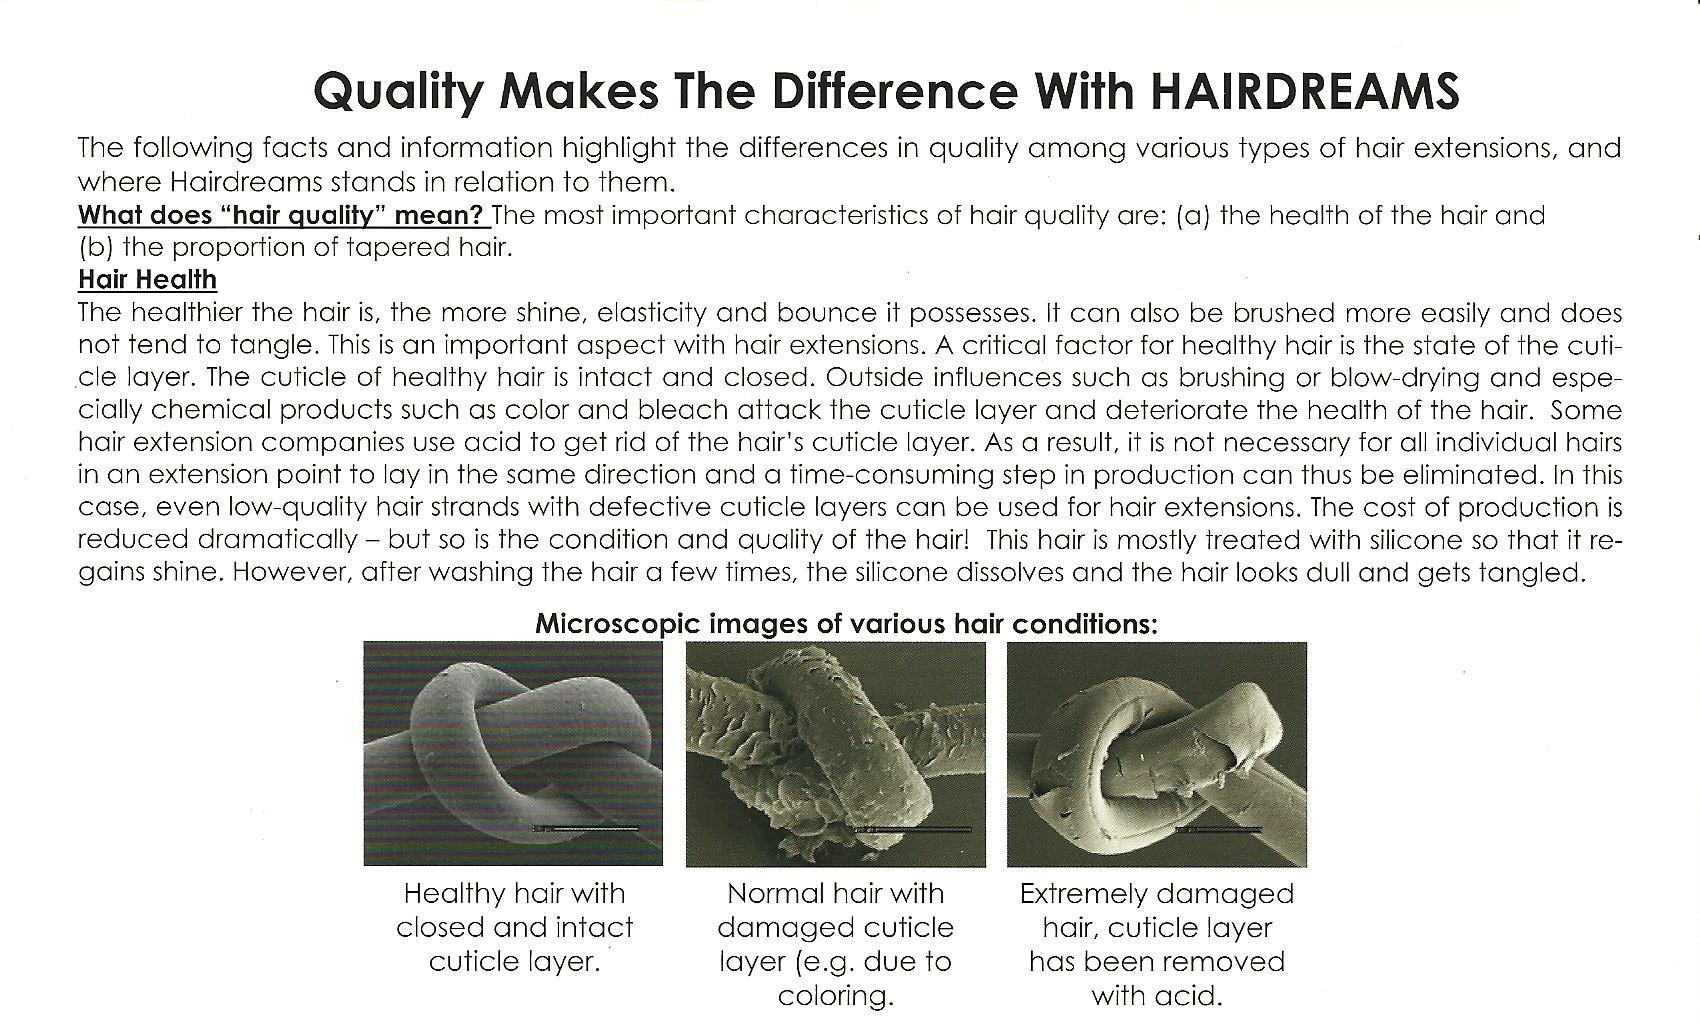 Quality Makes the Difference